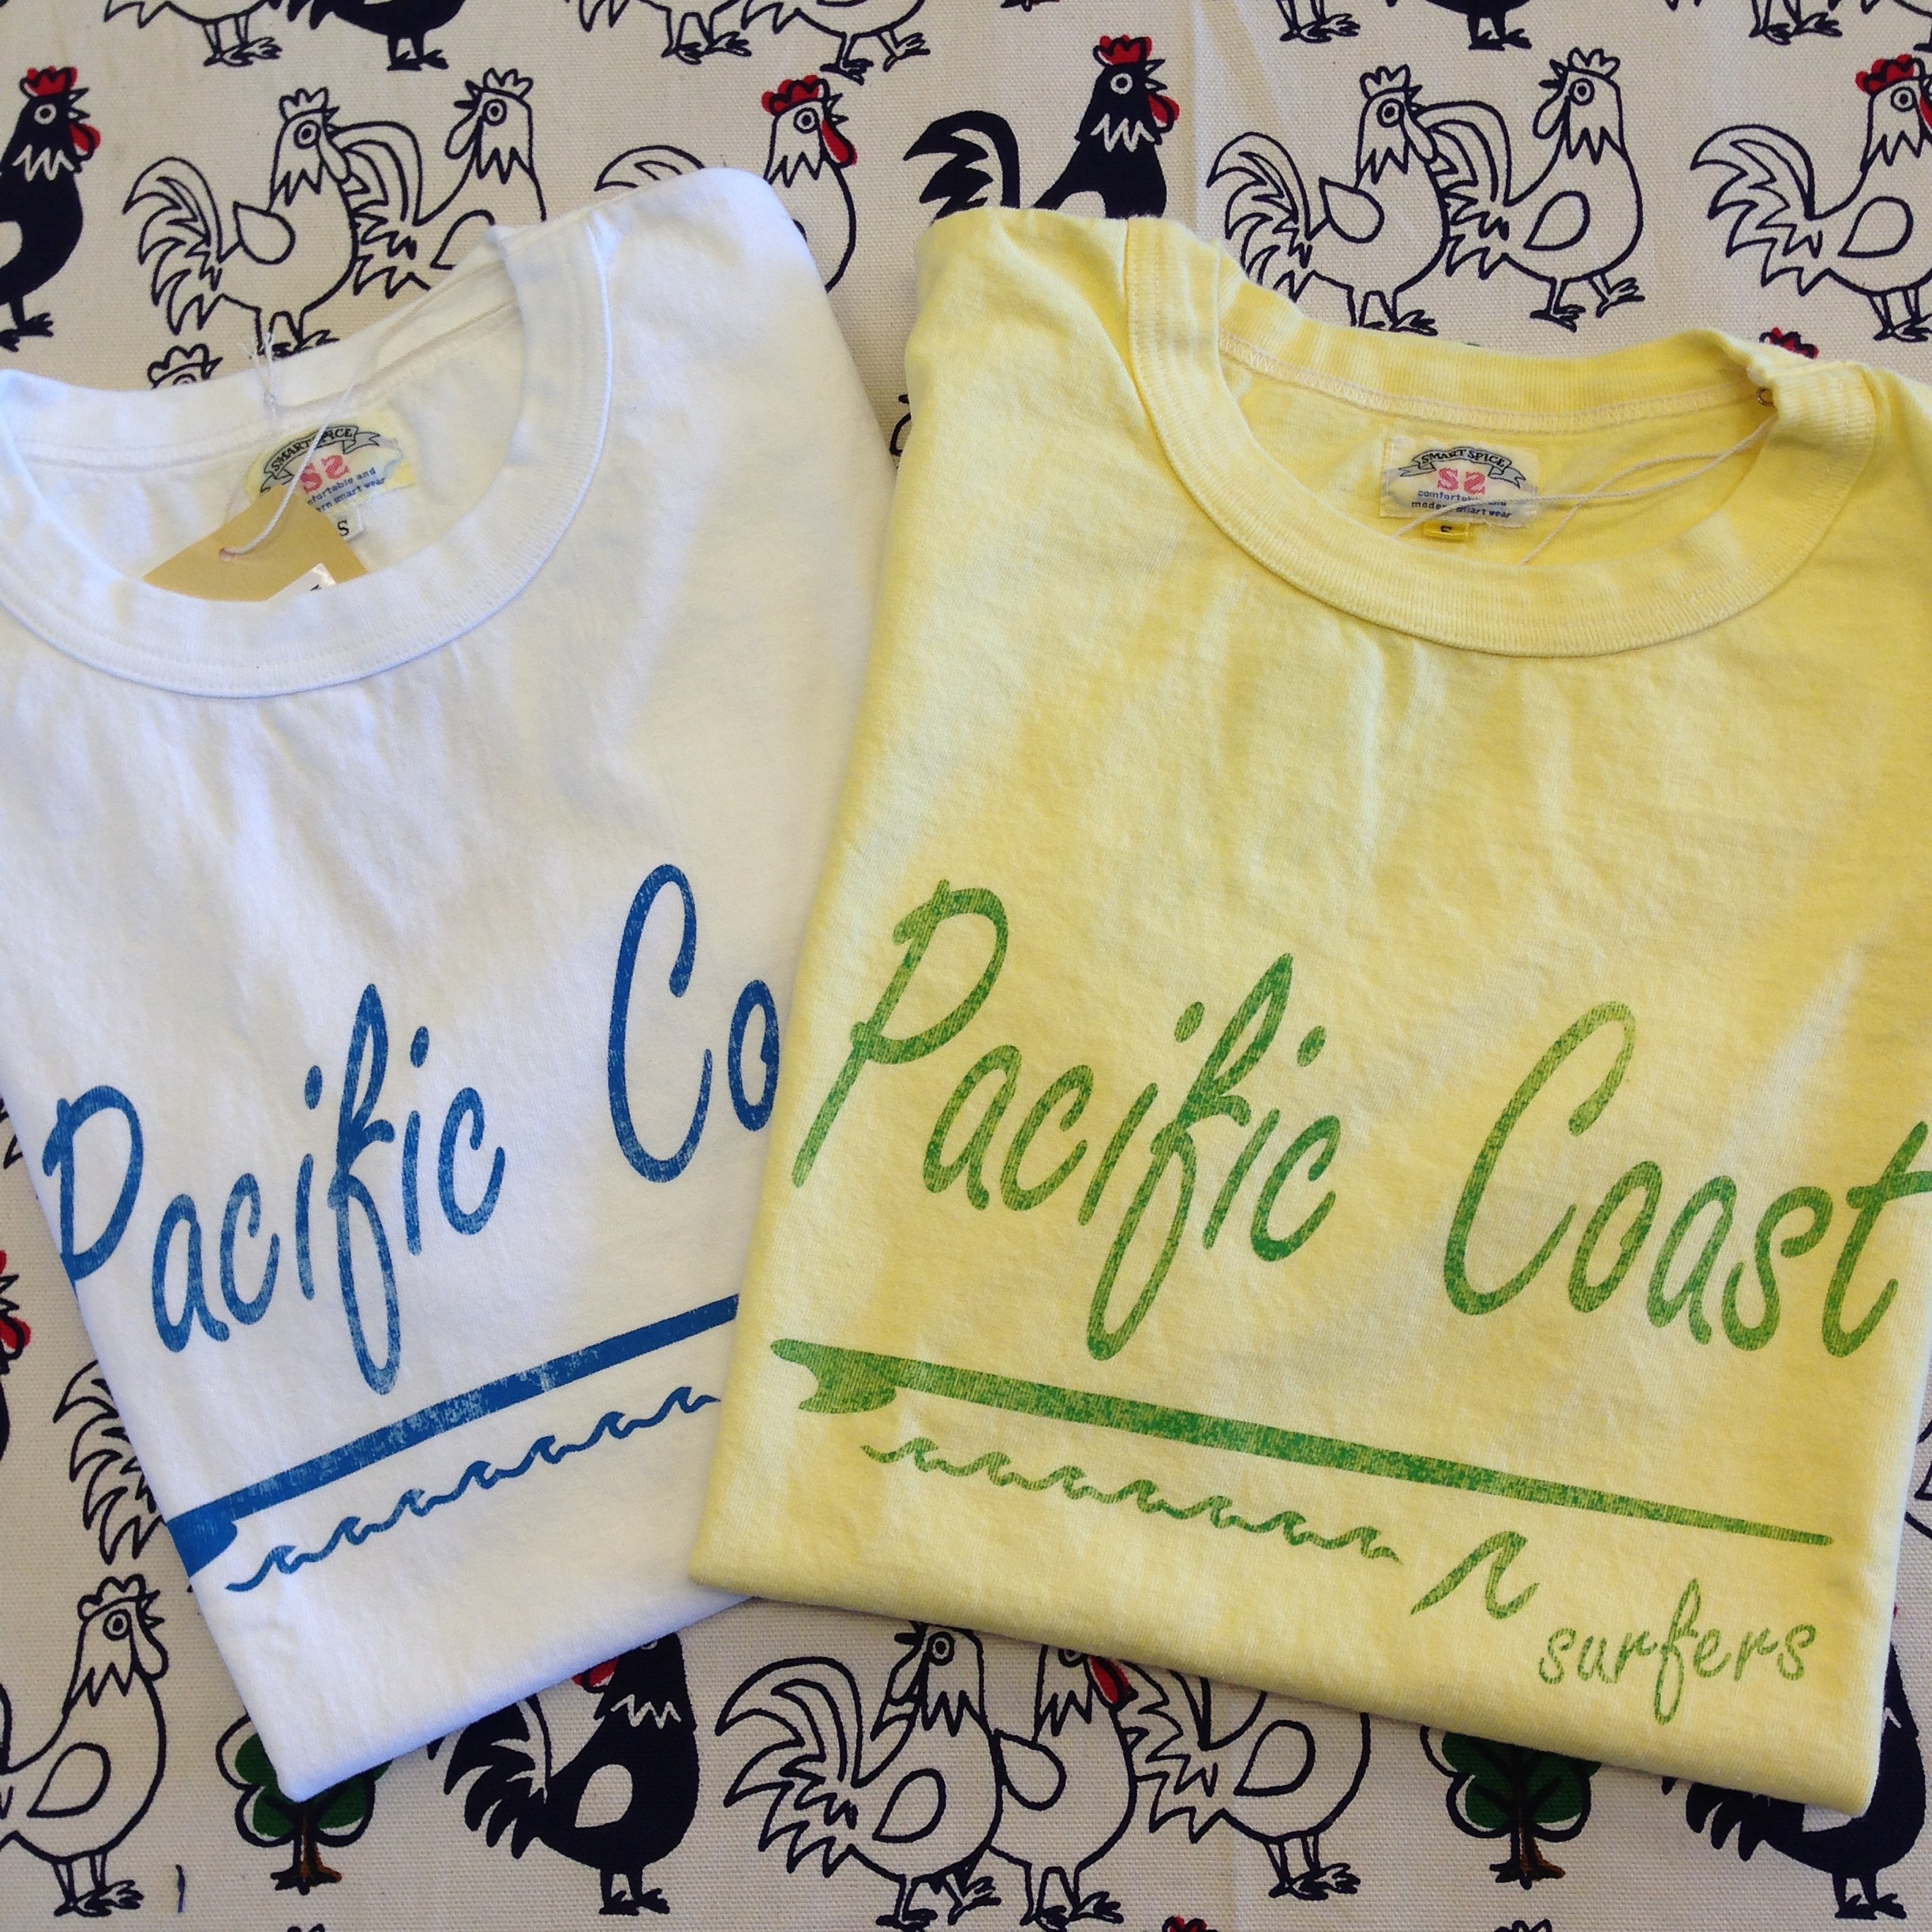 Smart spice(スマートスパイス) PACIFIC COAST S/S T-SHIRTS SMC0037